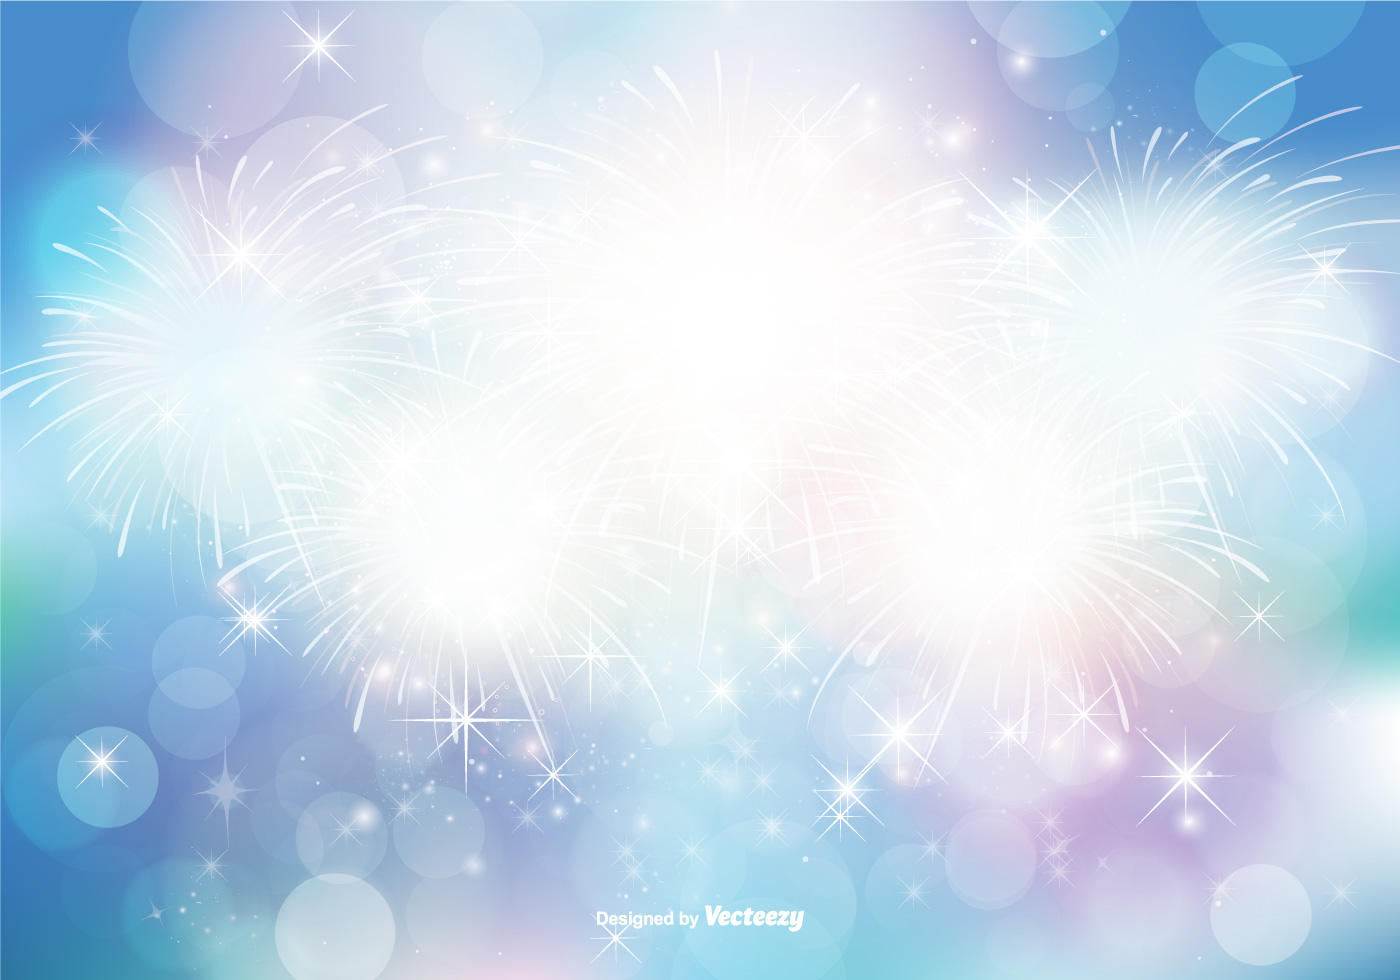 abstract background vector illustration - photo #30